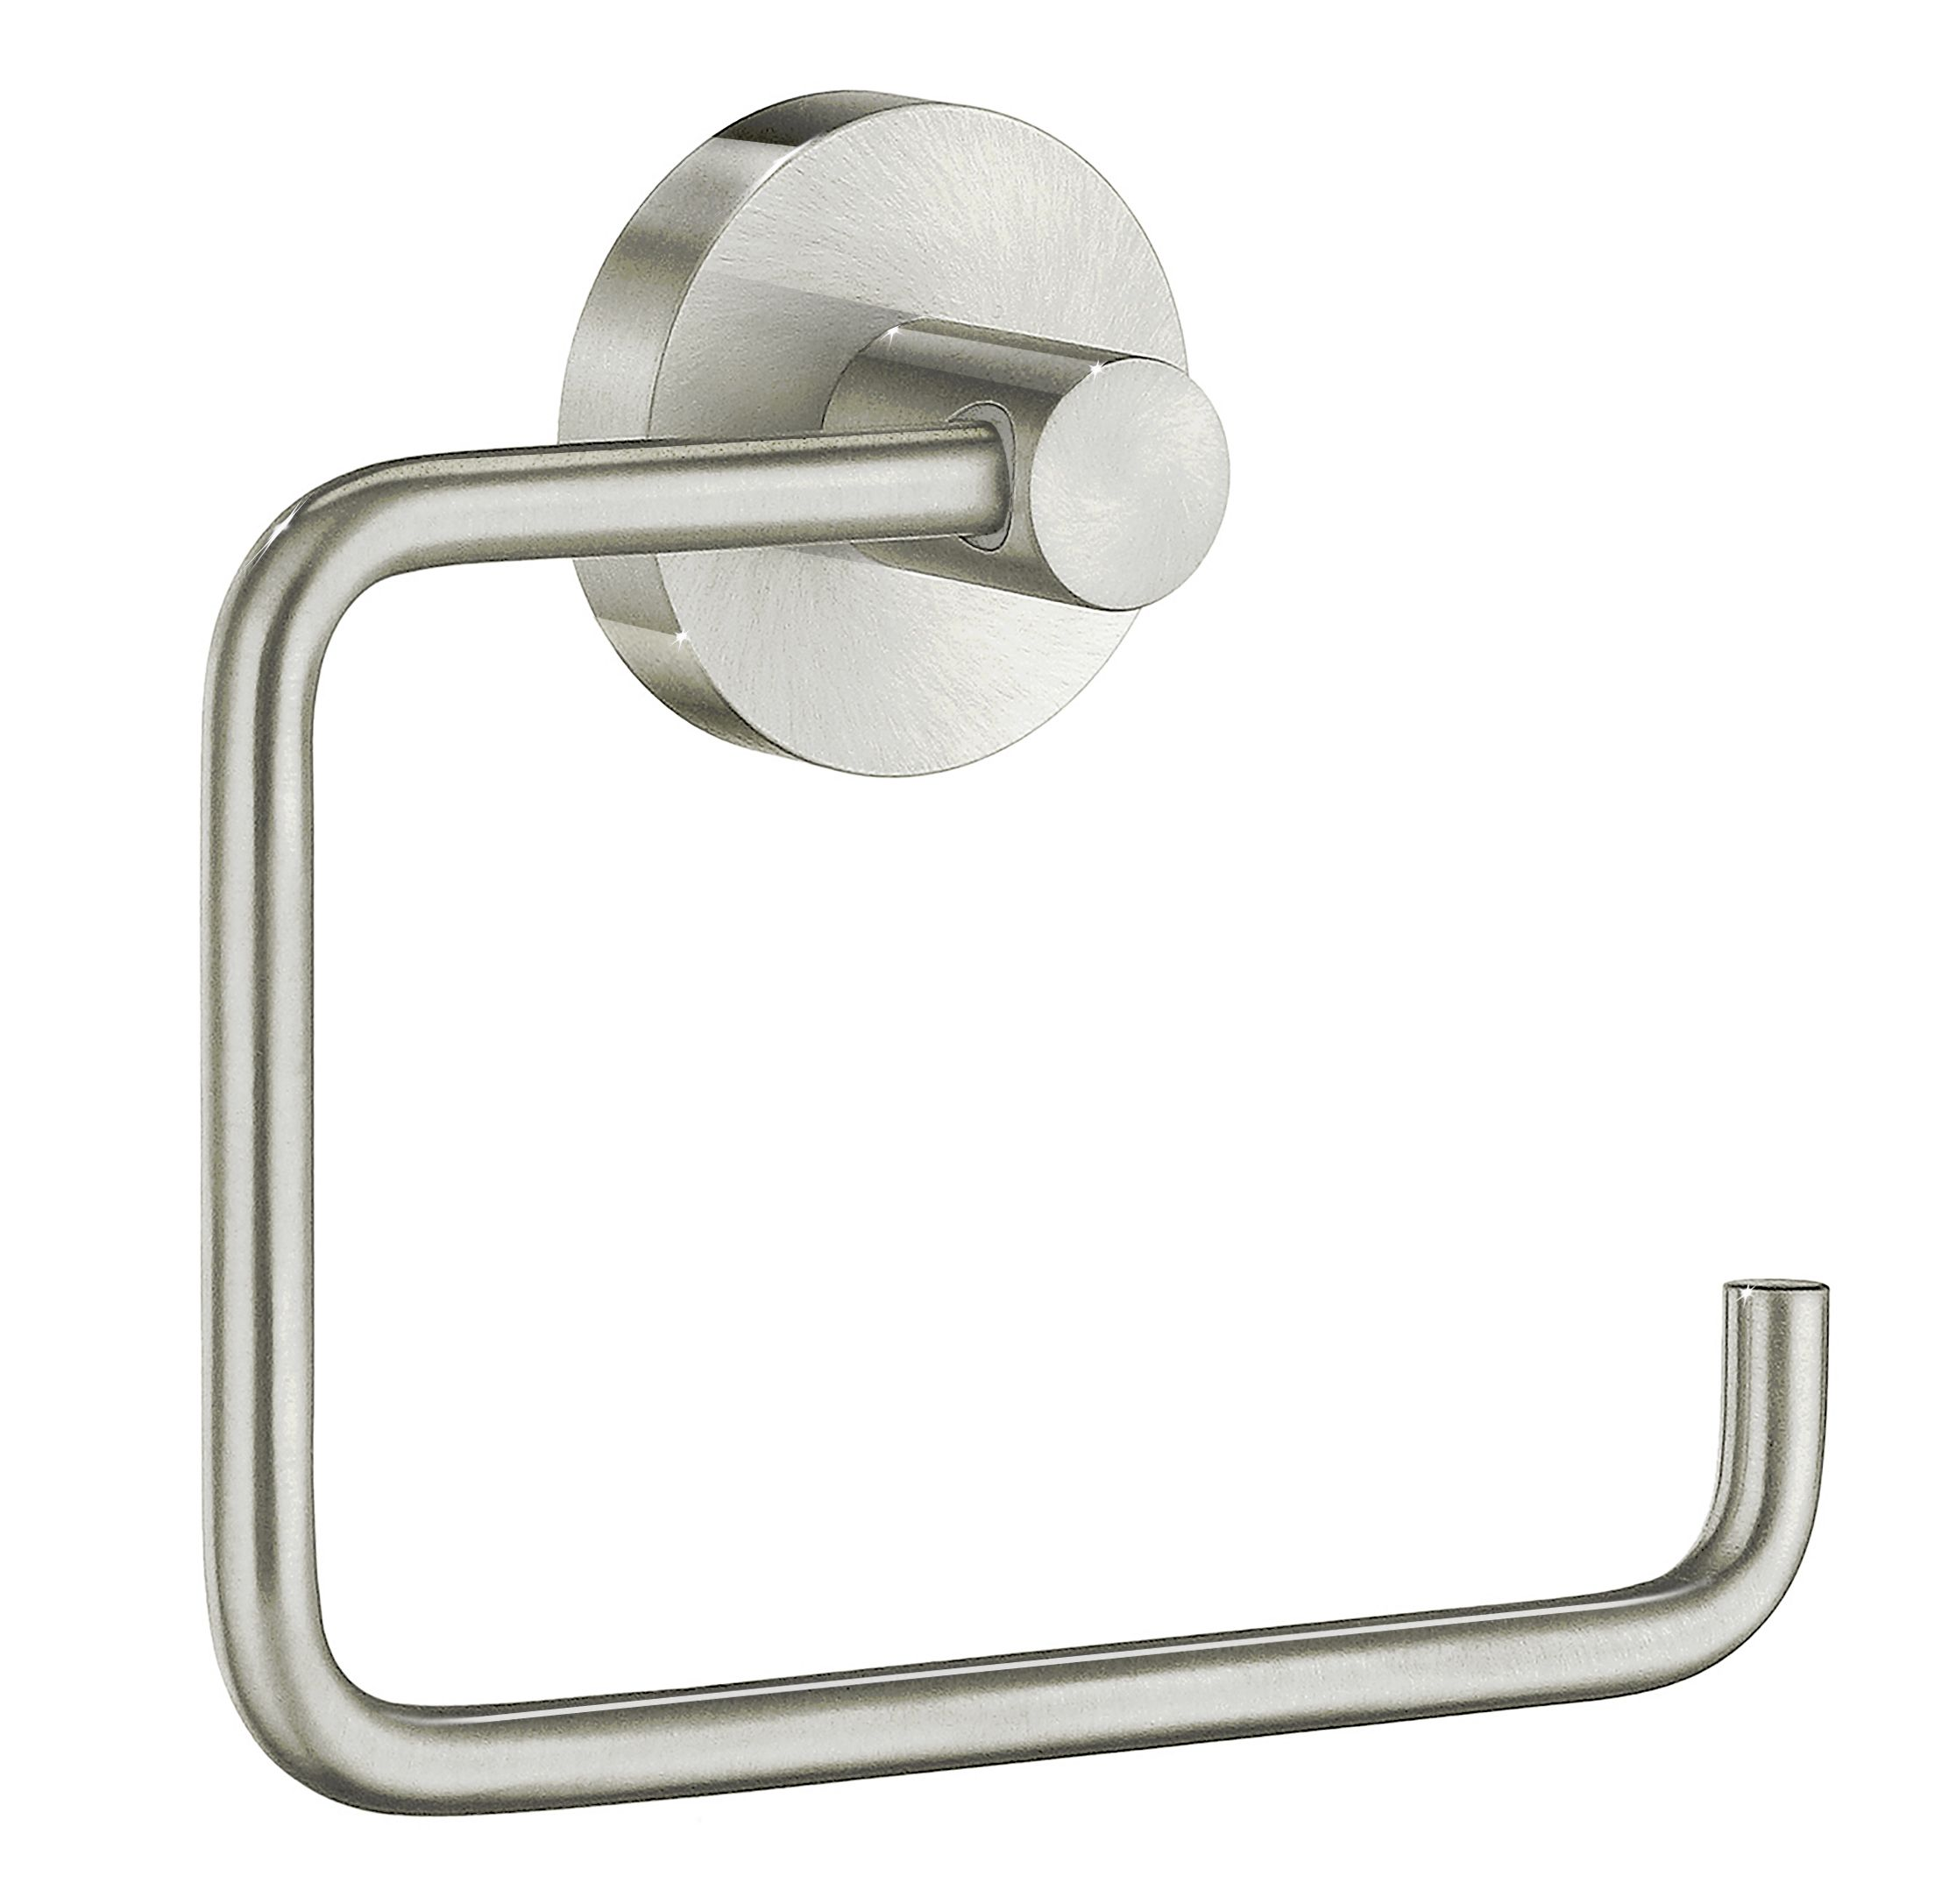 Smedbo Home Collection Brushed Nickel Toilet Paper Holder Recessed Toilet Paper Holder Wall Mounted Toilet Toilet Paper Holder